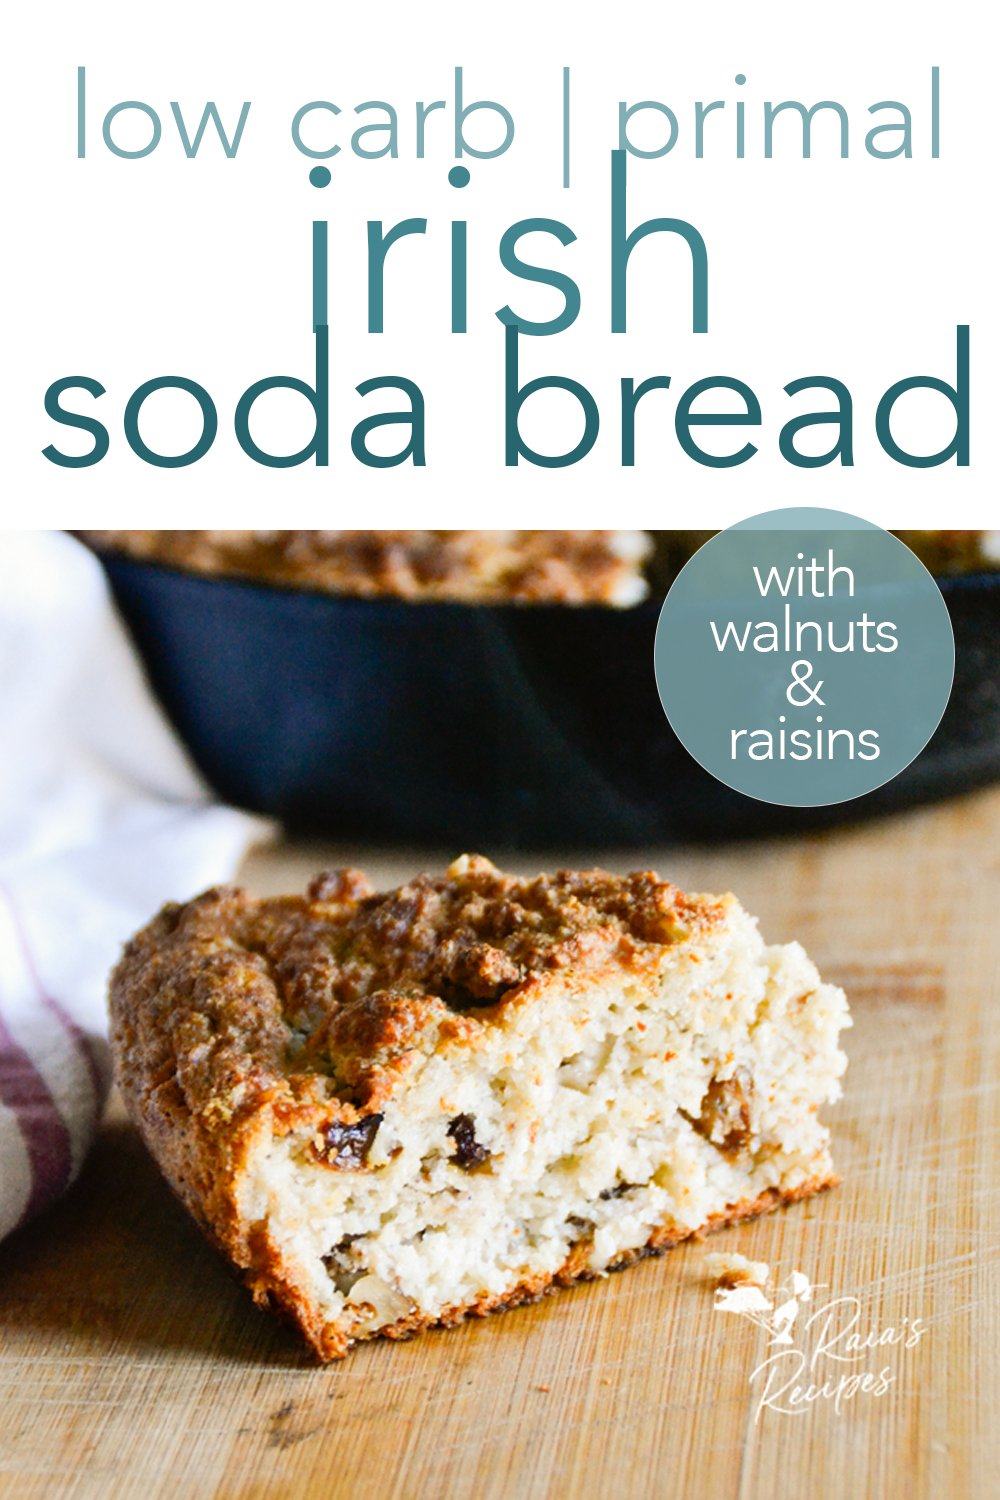 For a healthy and delicious version of the traditional bread, this grain-free Irish soda bread is a favorite at my house! #irish #sodabread #grainfree #primal #lowcarb #glutenfree #raisins #walnuts #traditional #bread #spotteddog